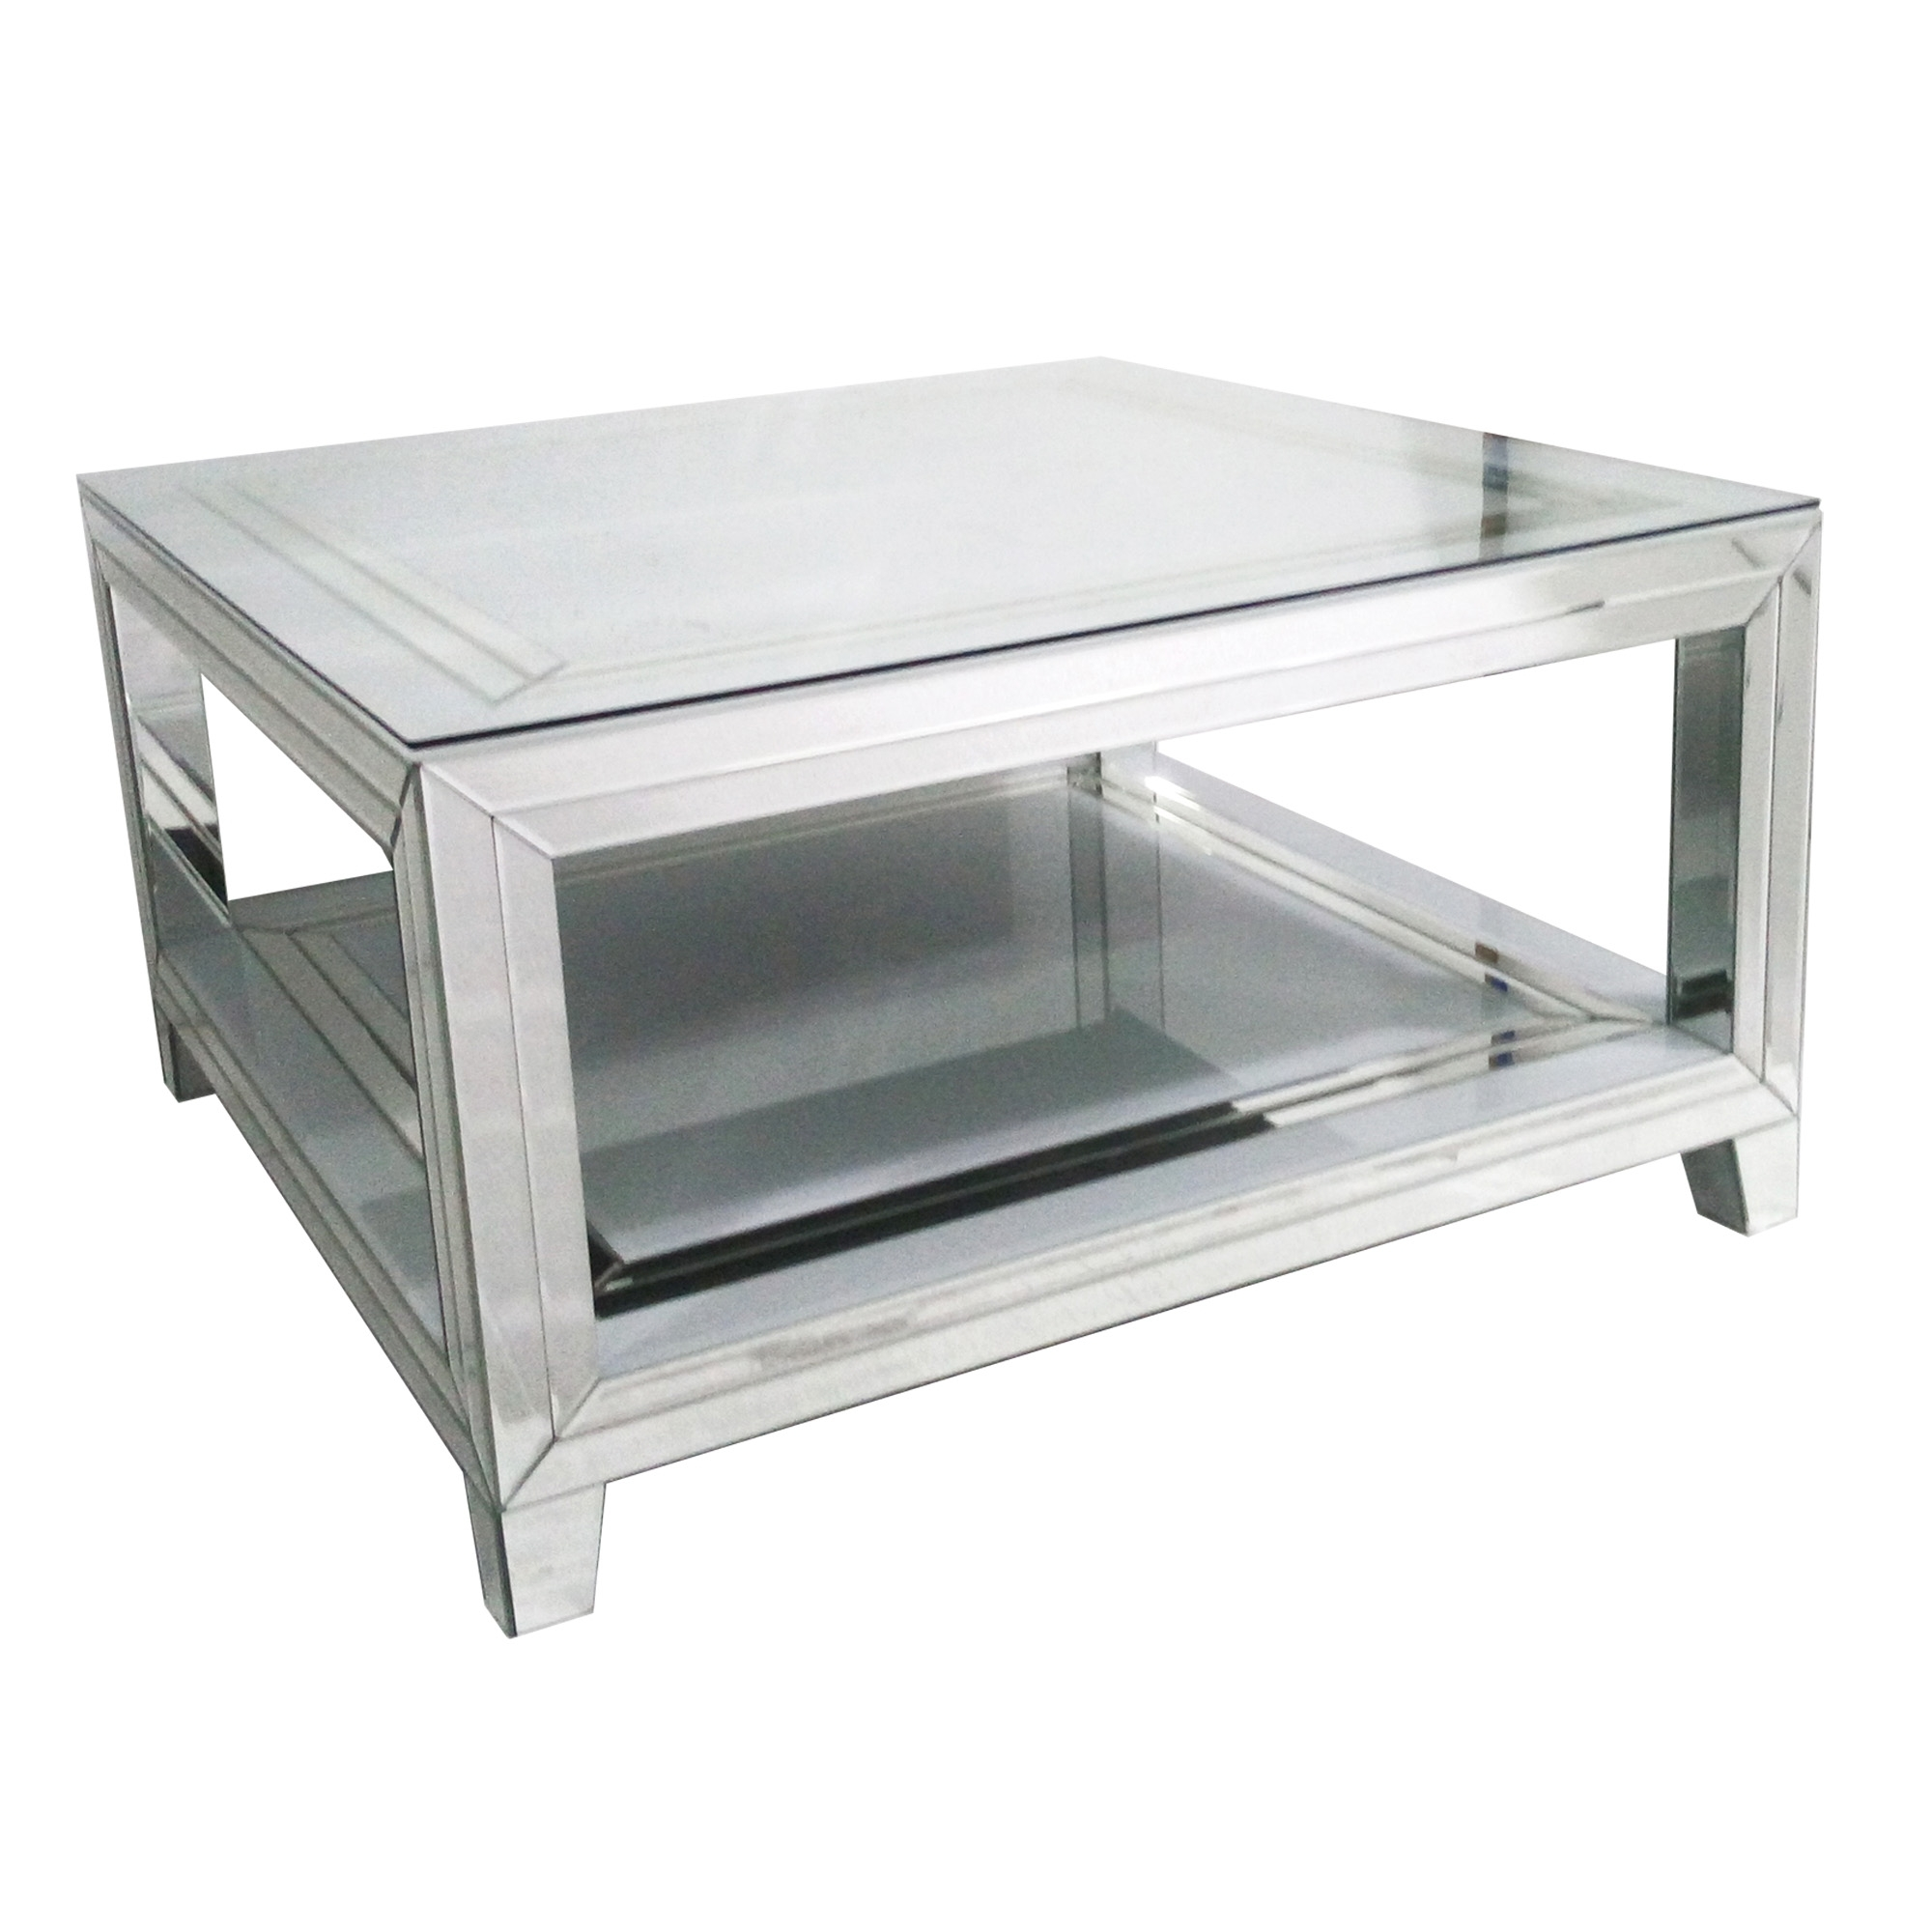 Excellent Bianco Mirrored Square Coffee Table Pabps2019 Chair Design Images Pabps2019Com